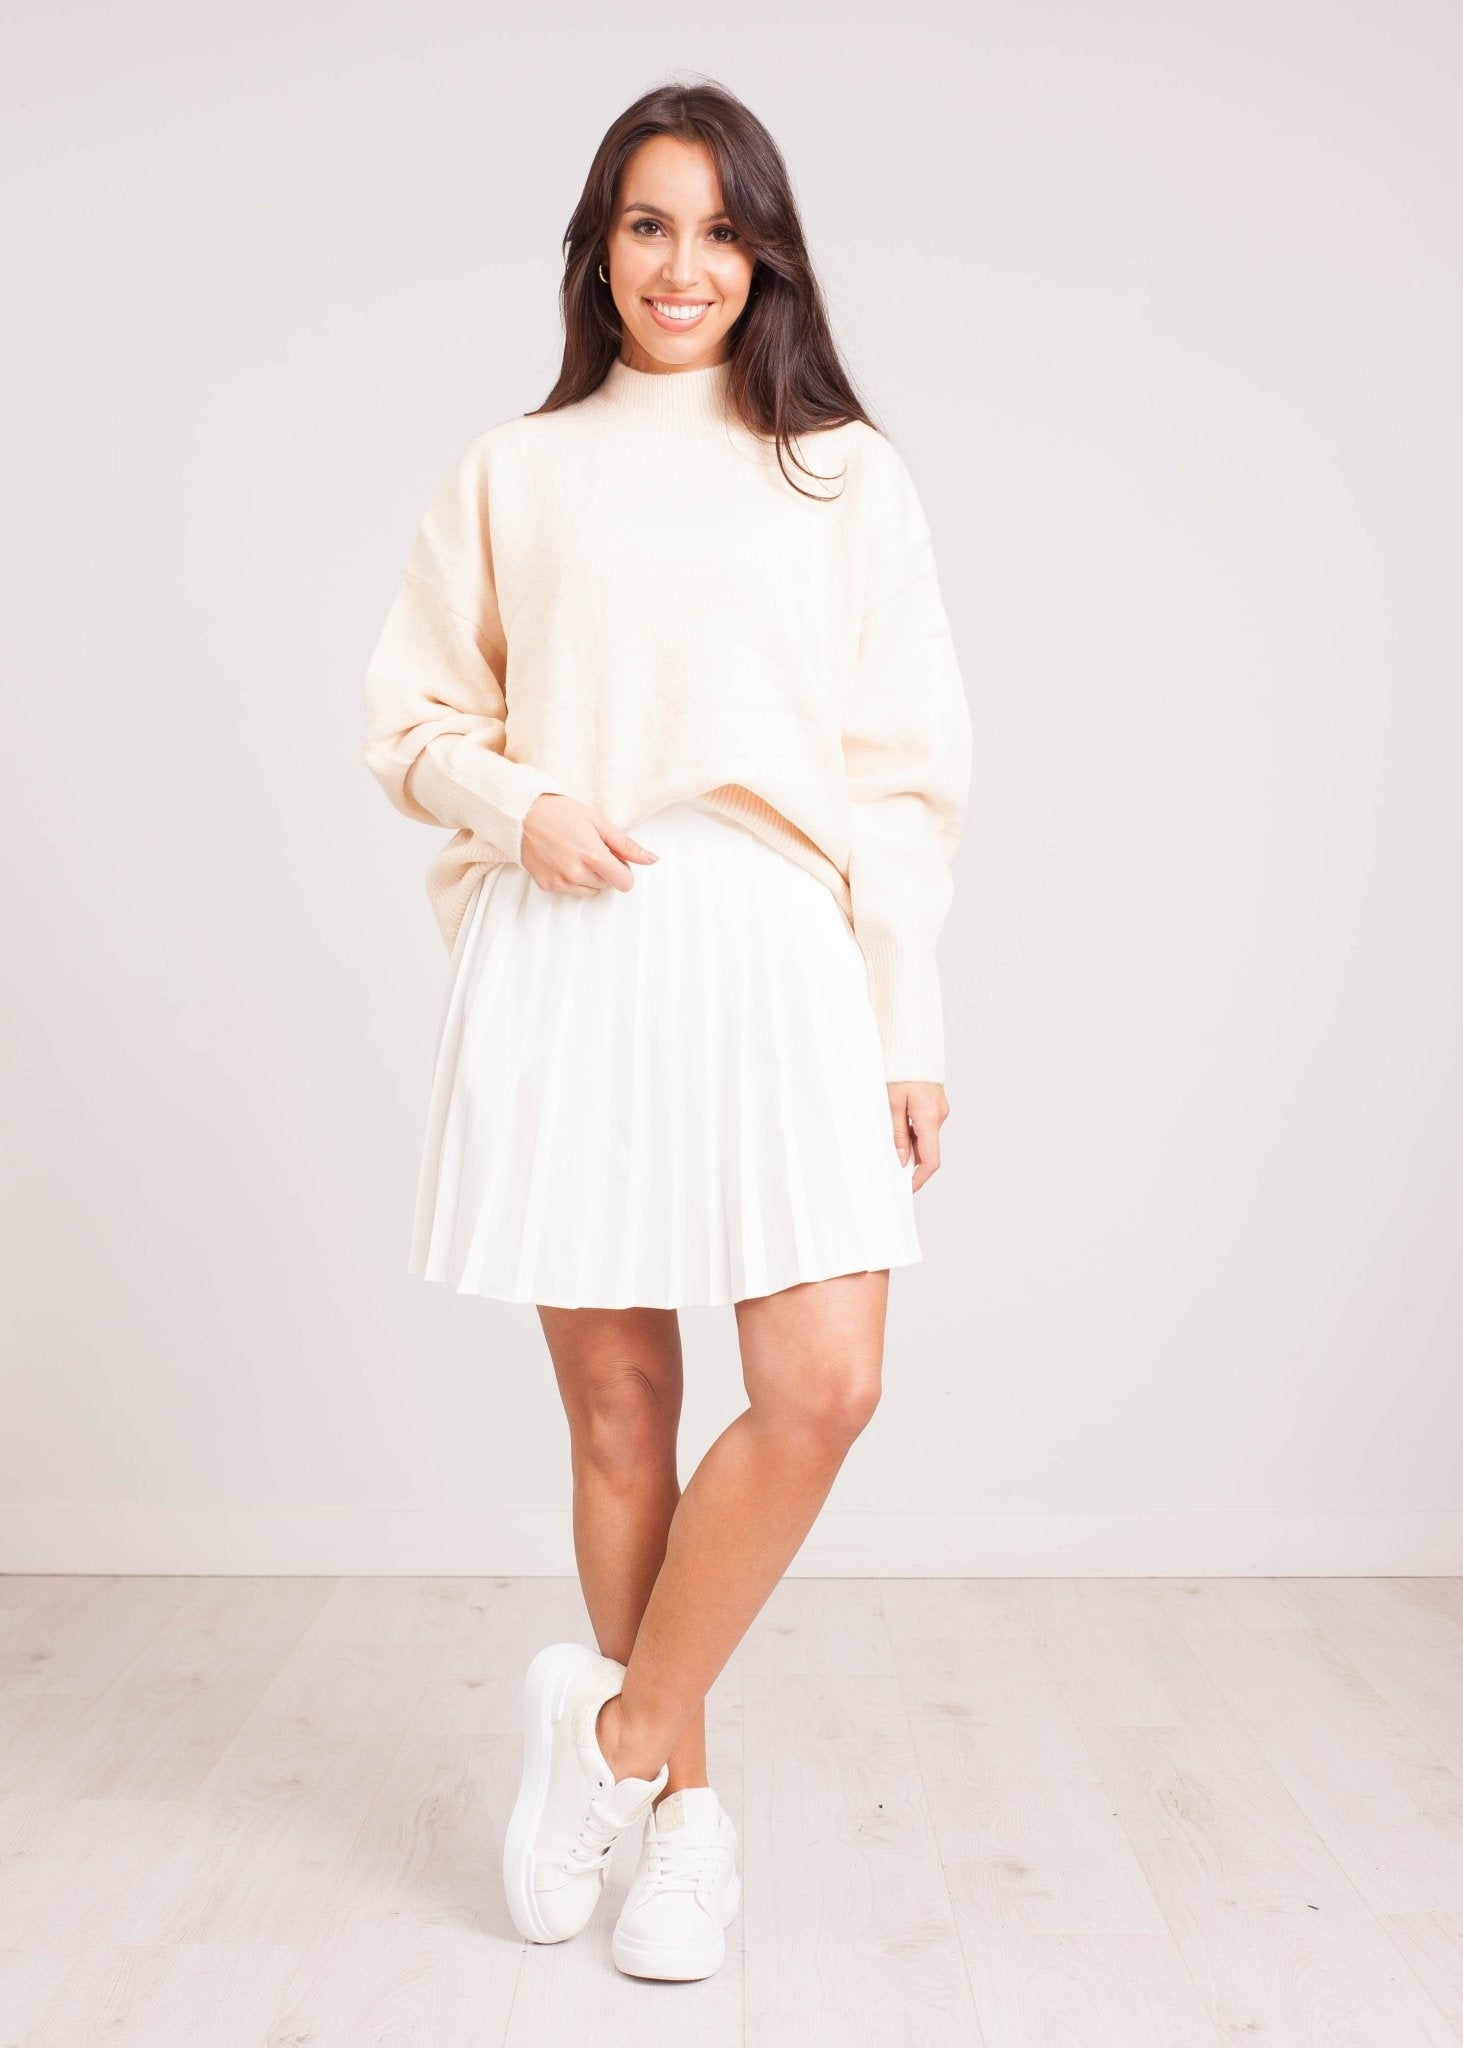 Priya Pleated Skirt in White - The Walk in Wardrobe